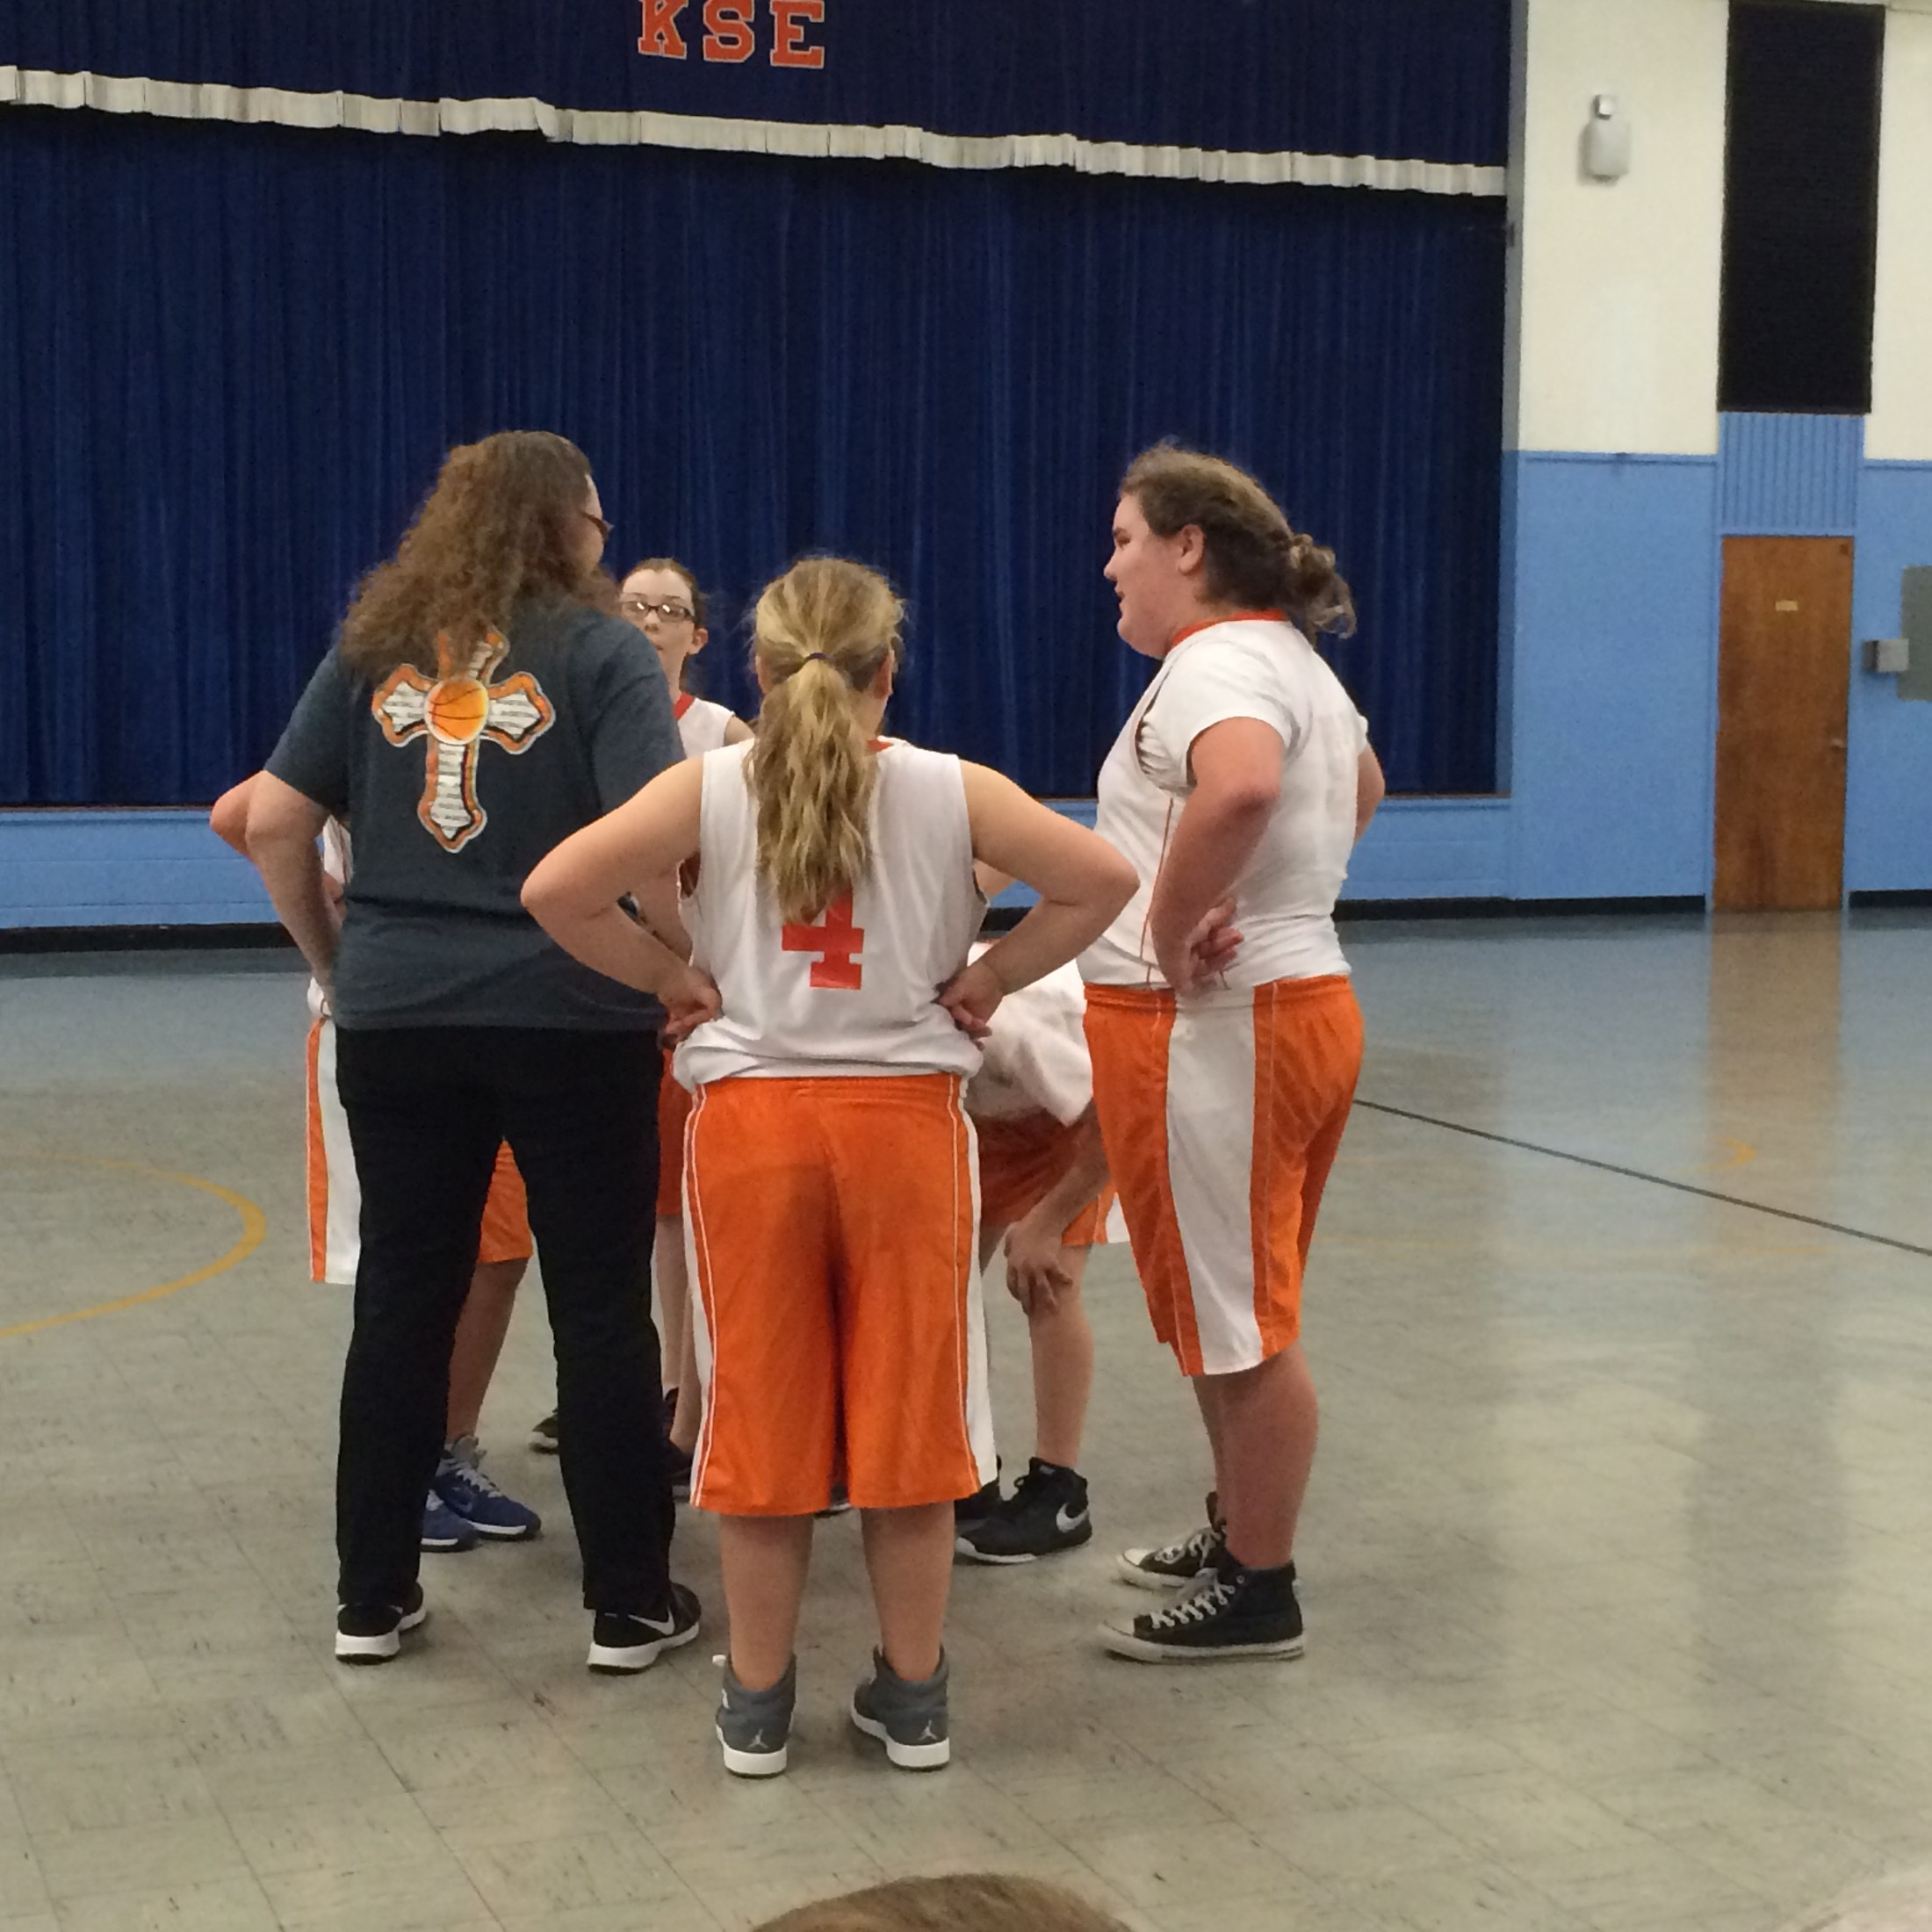 Girls huddled on court before game